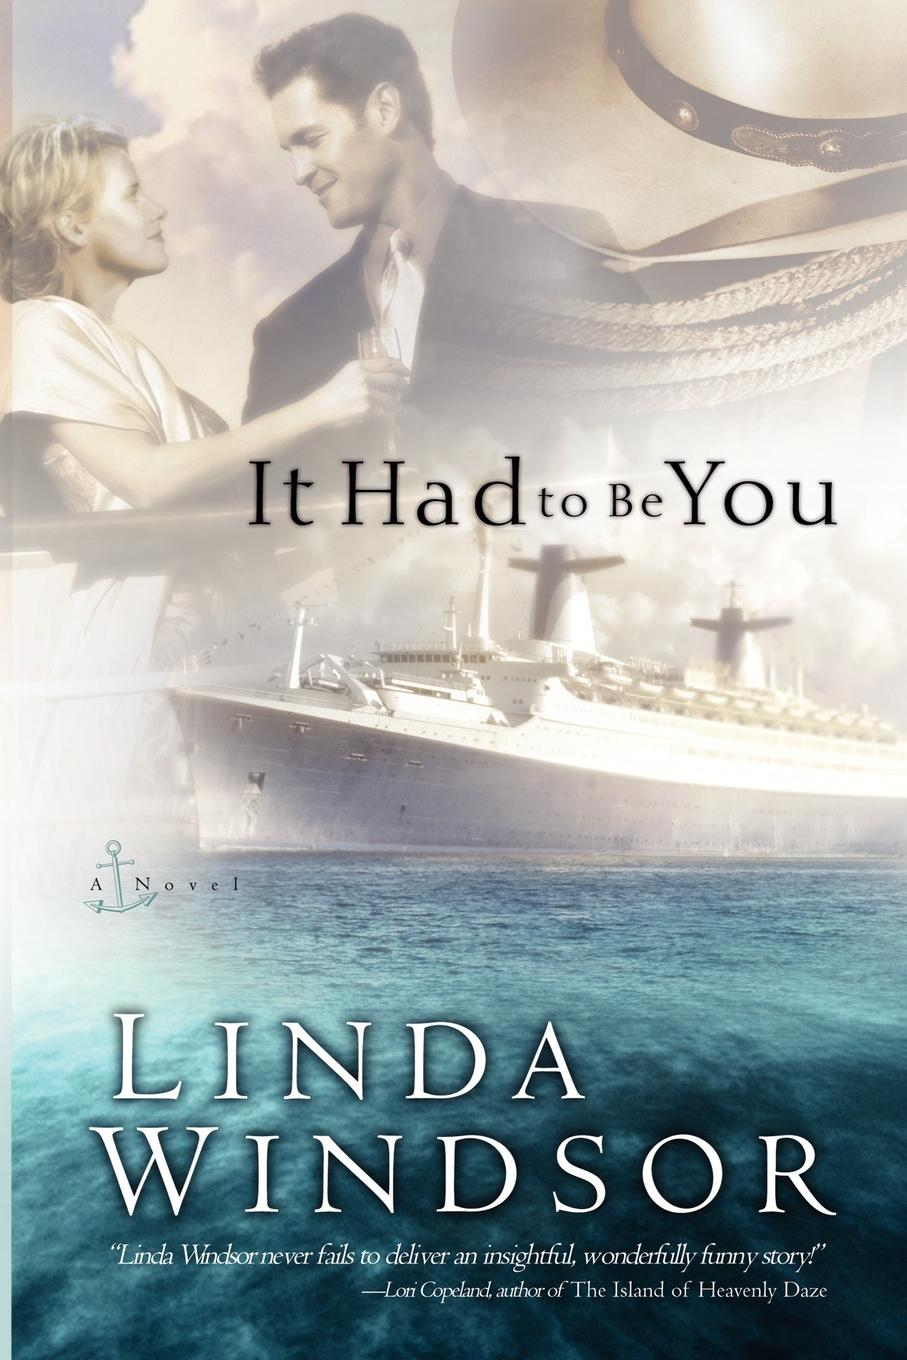 Linda Windsor It Had to Be You 1d 2d qr code image barcode scanner scanning barcode for windows vista android ios devices barcode reader usb interface